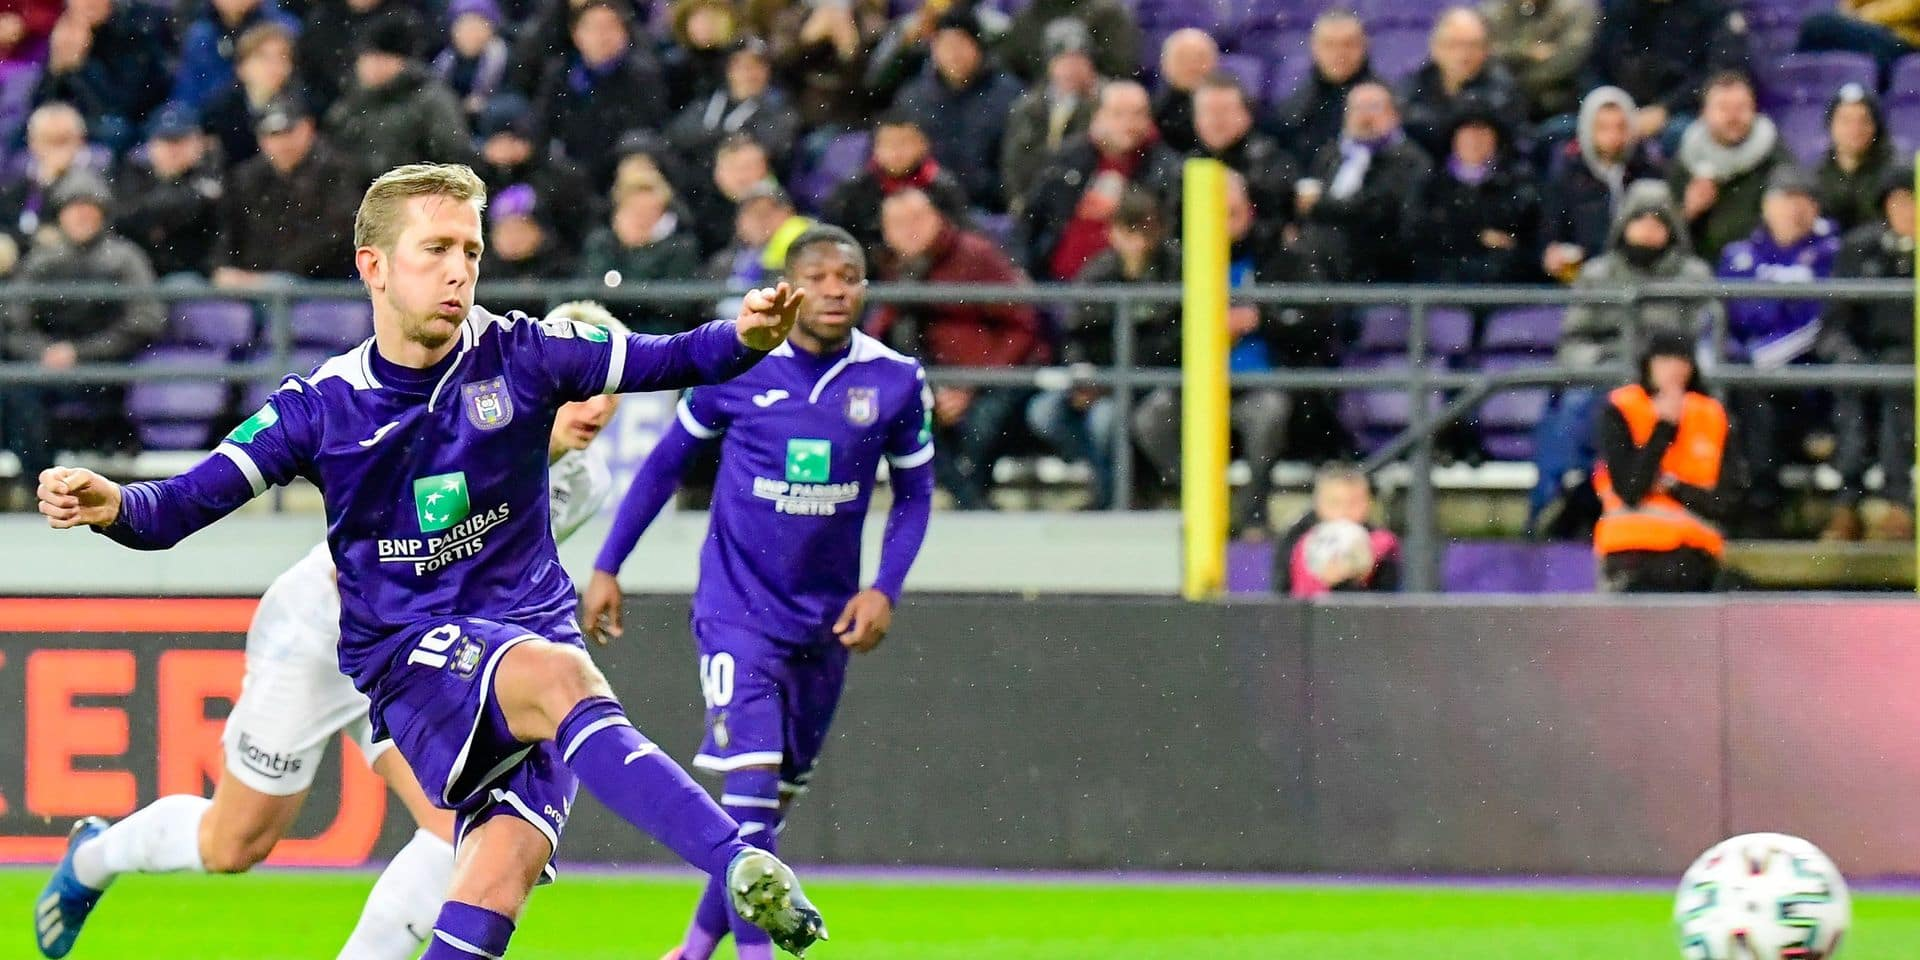 RSC Anderlecht v AS Eupen - Jupiler Pro League